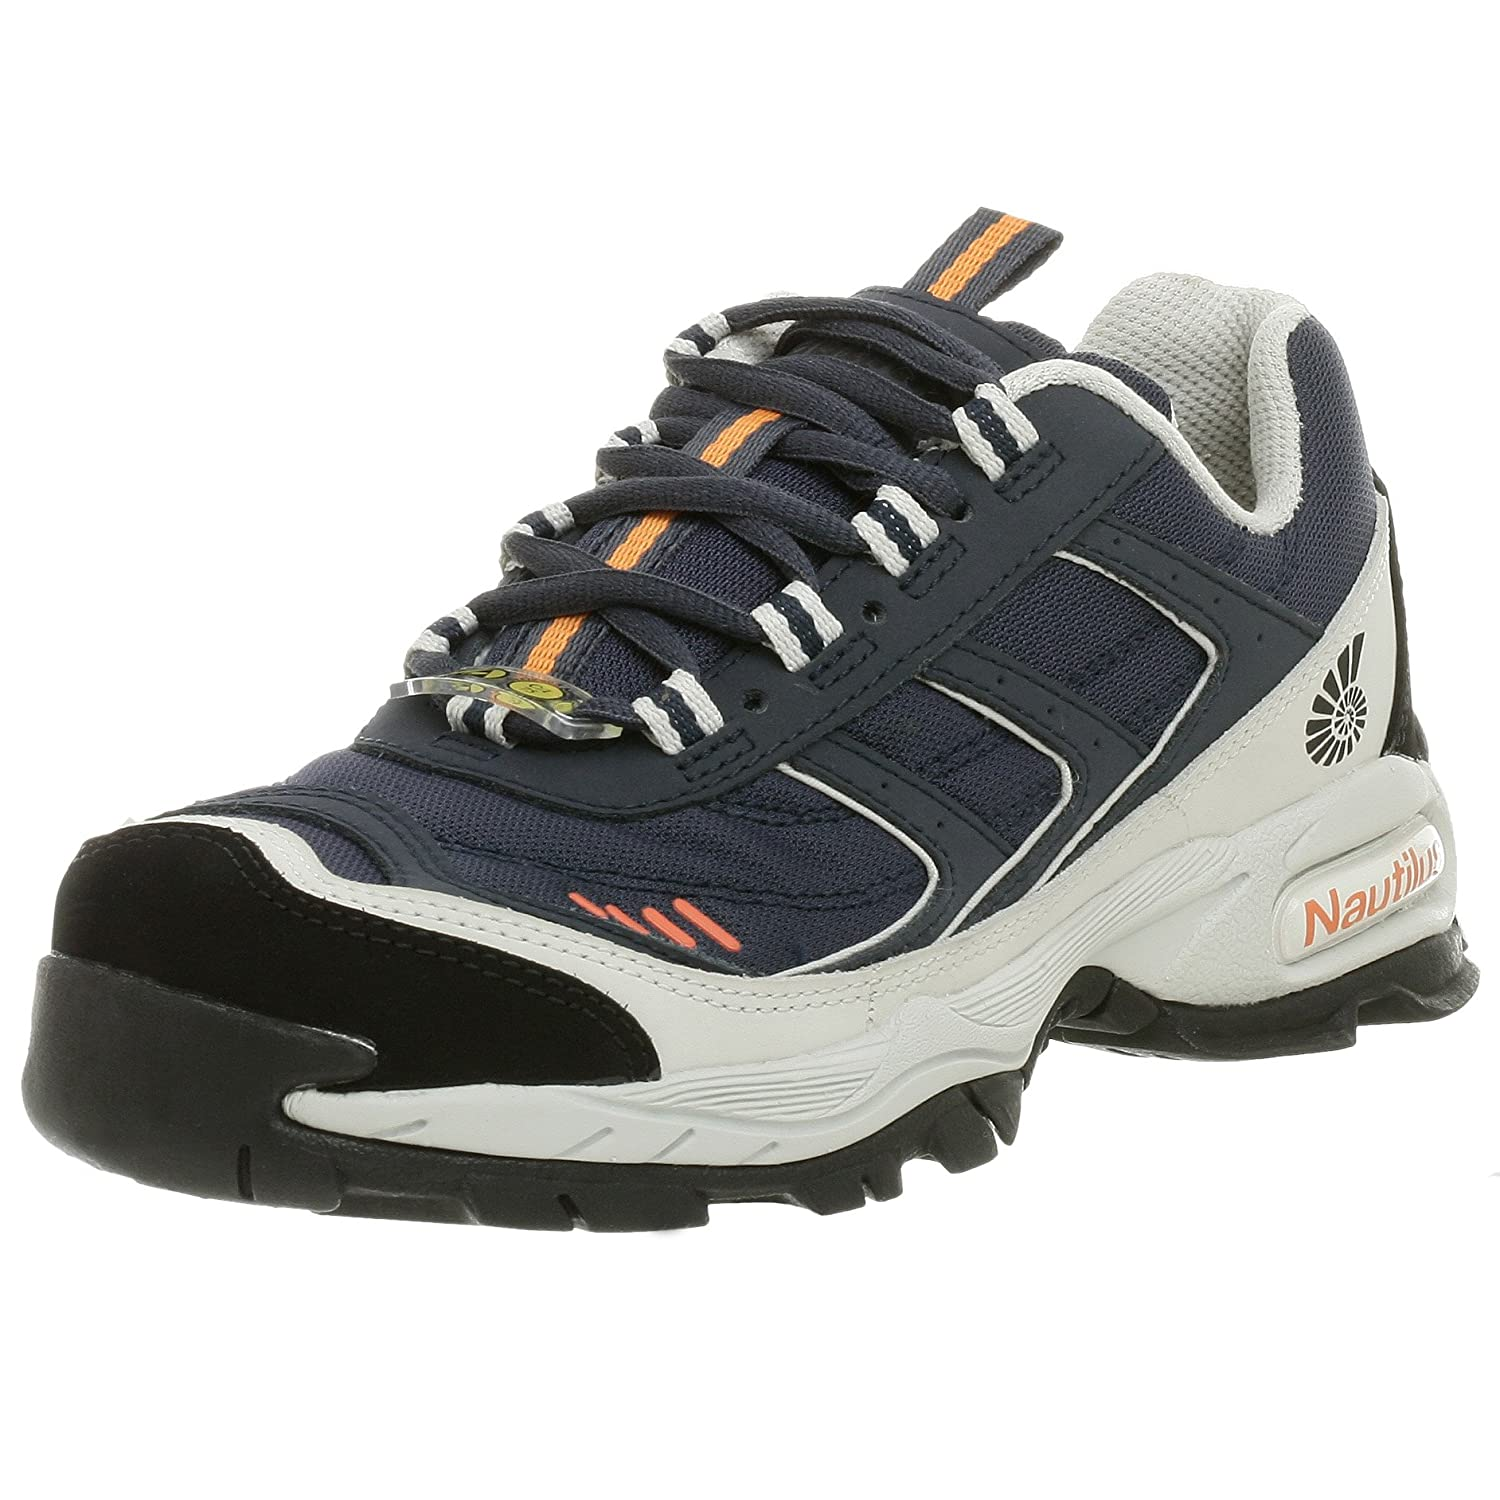 Amazon.com: Nautilus 1376 Women's ESD No Exposed Metal EH Safety Toe  Athletic Shoe: Shoes